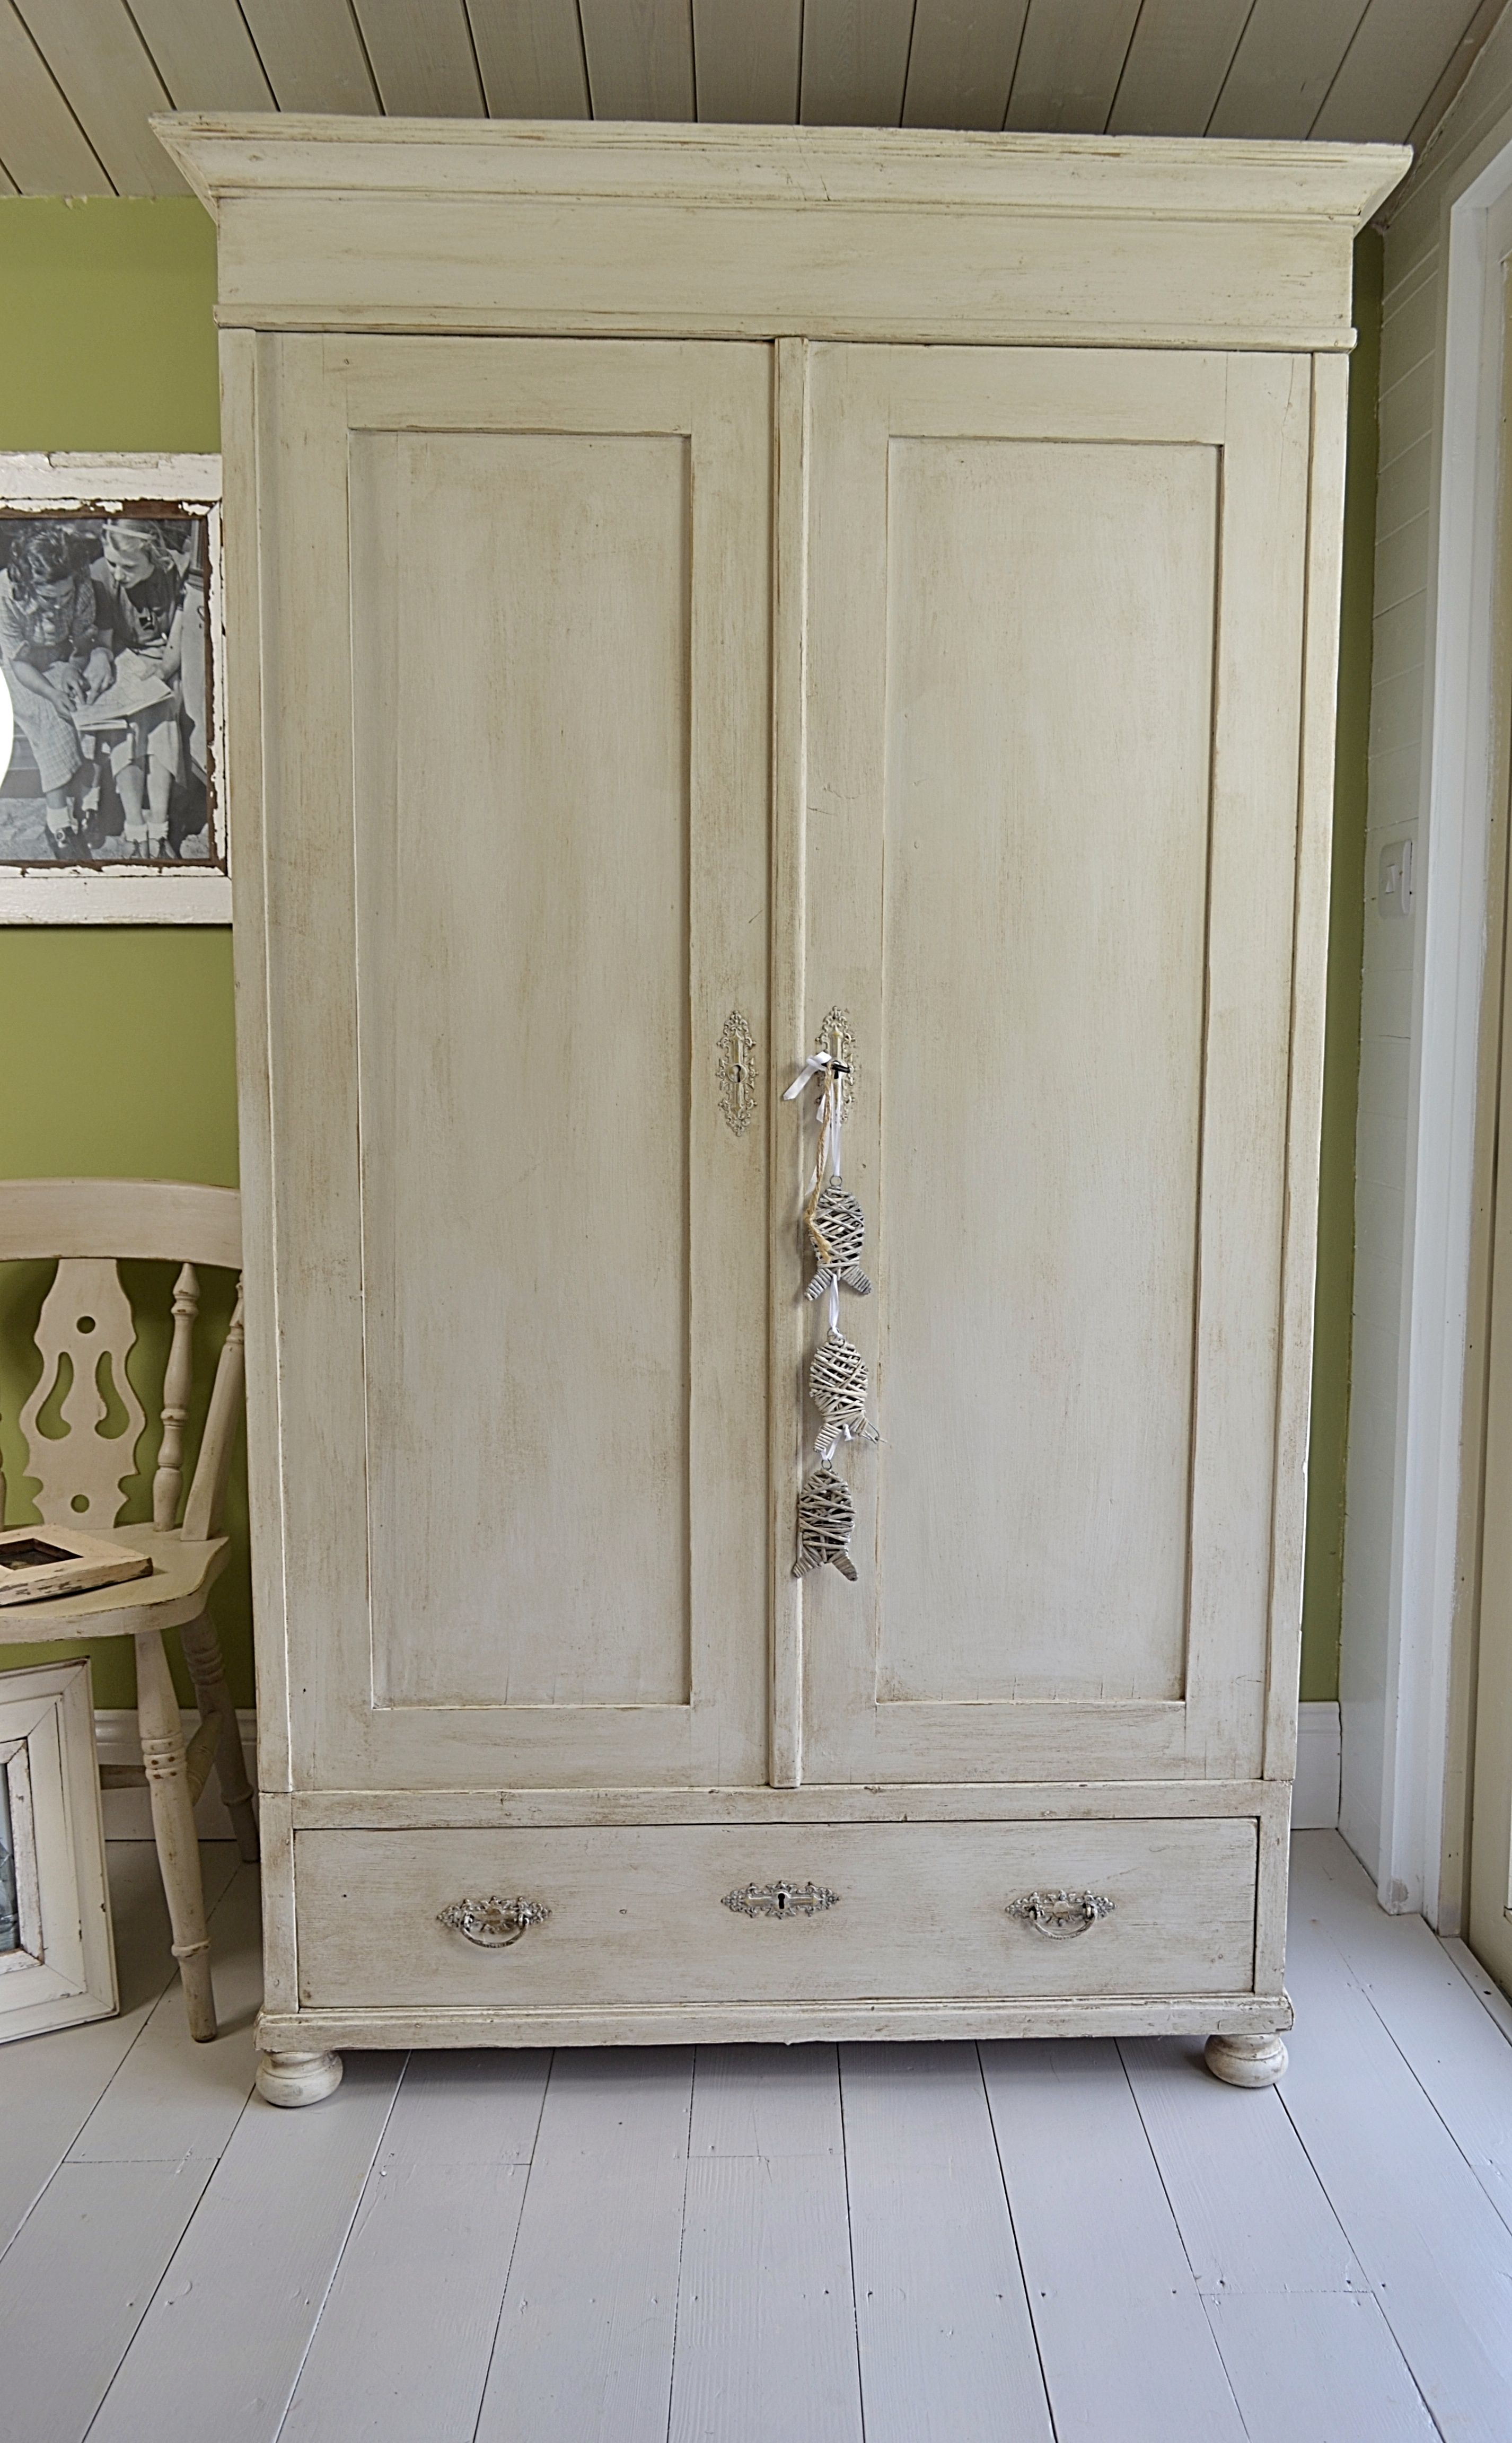 We Love This Solid Pine Antique Wardrobe The Pretty Ornate Handles And Bun Feet Really Make This Antique Wardrobe Pine Bedroom Furniture Shabby Chic Wardrobe